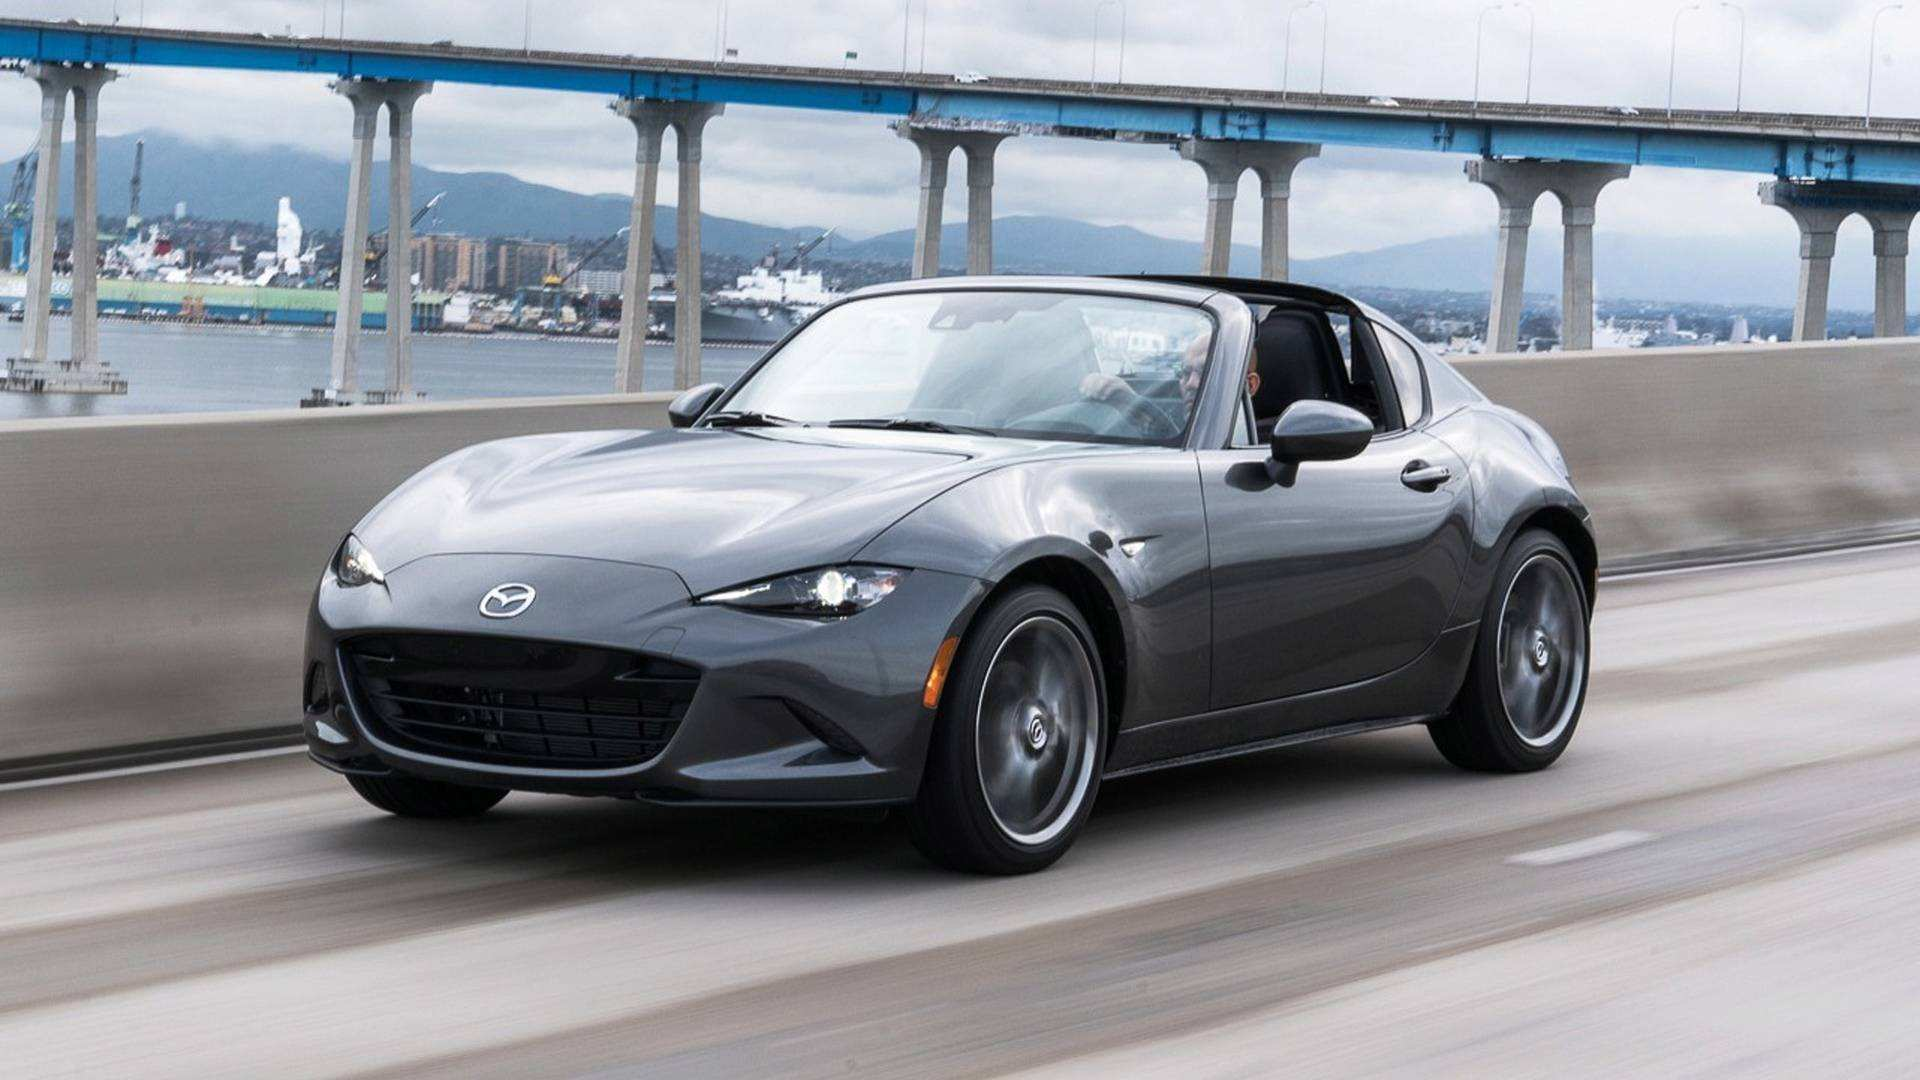 30 Concept of Mazda Mx 5 Rf 2020 Price and Review with Mazda Mx 5 Rf 2020